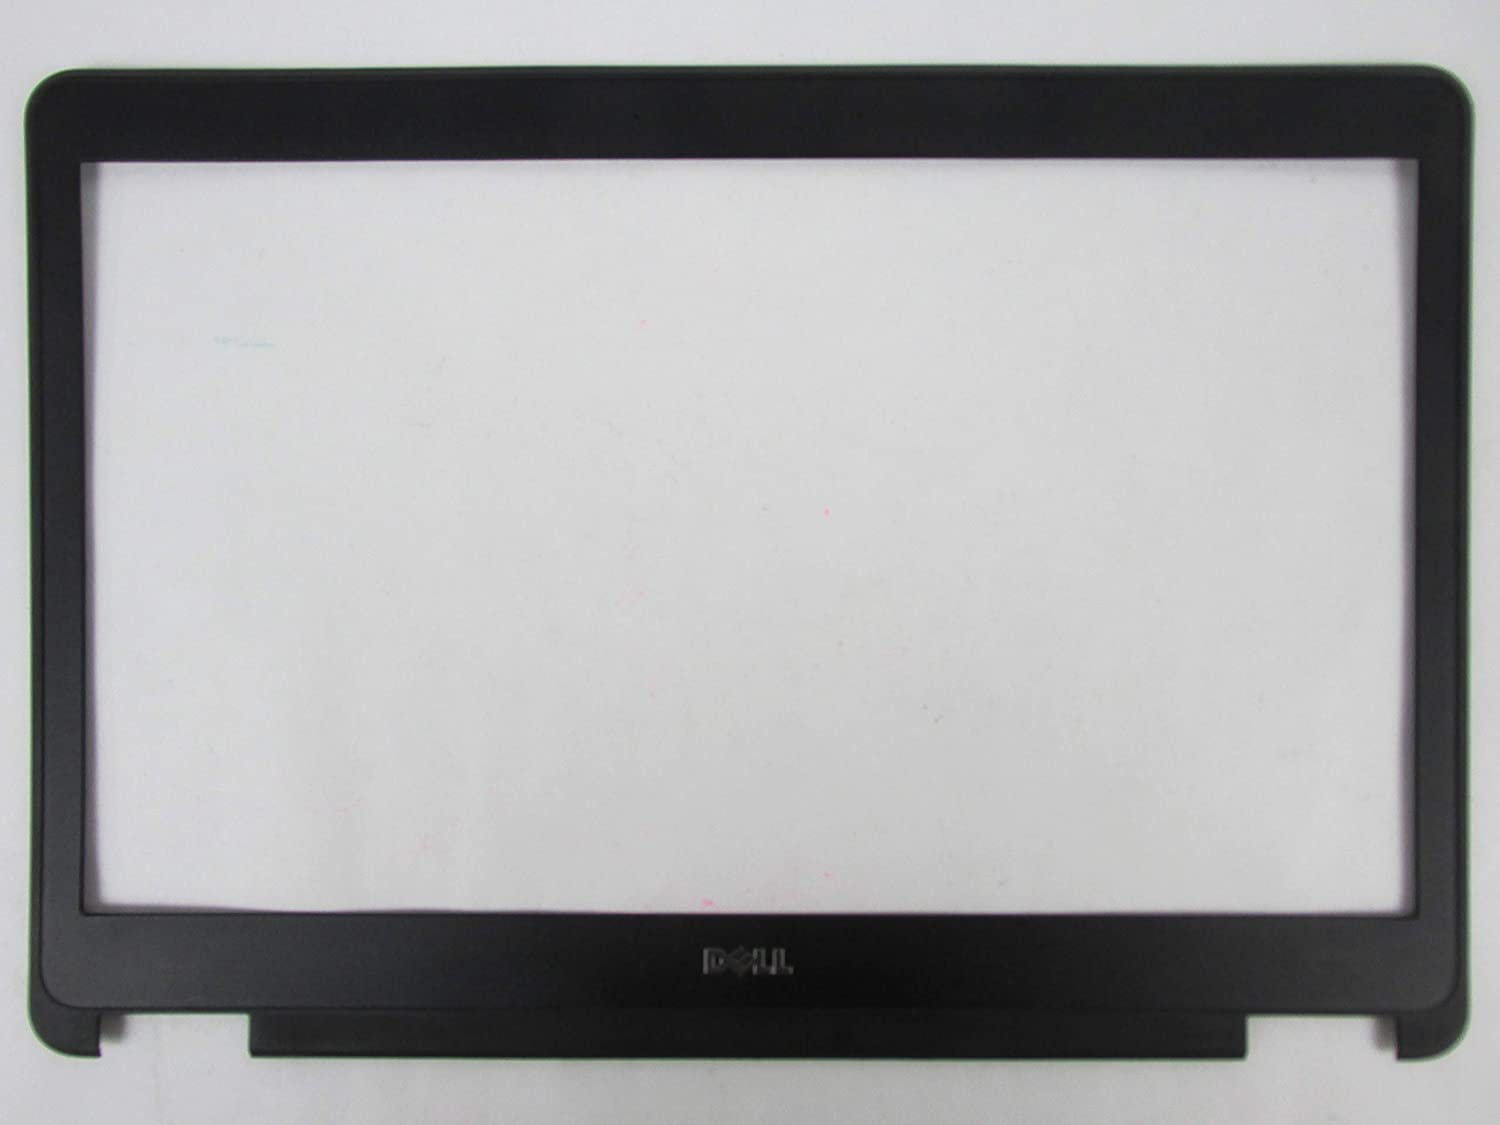 Dell Latitude E7440 14 LCD Front Trim Cover Bezel Plastic D51RK No Camera D51RK Refurbished